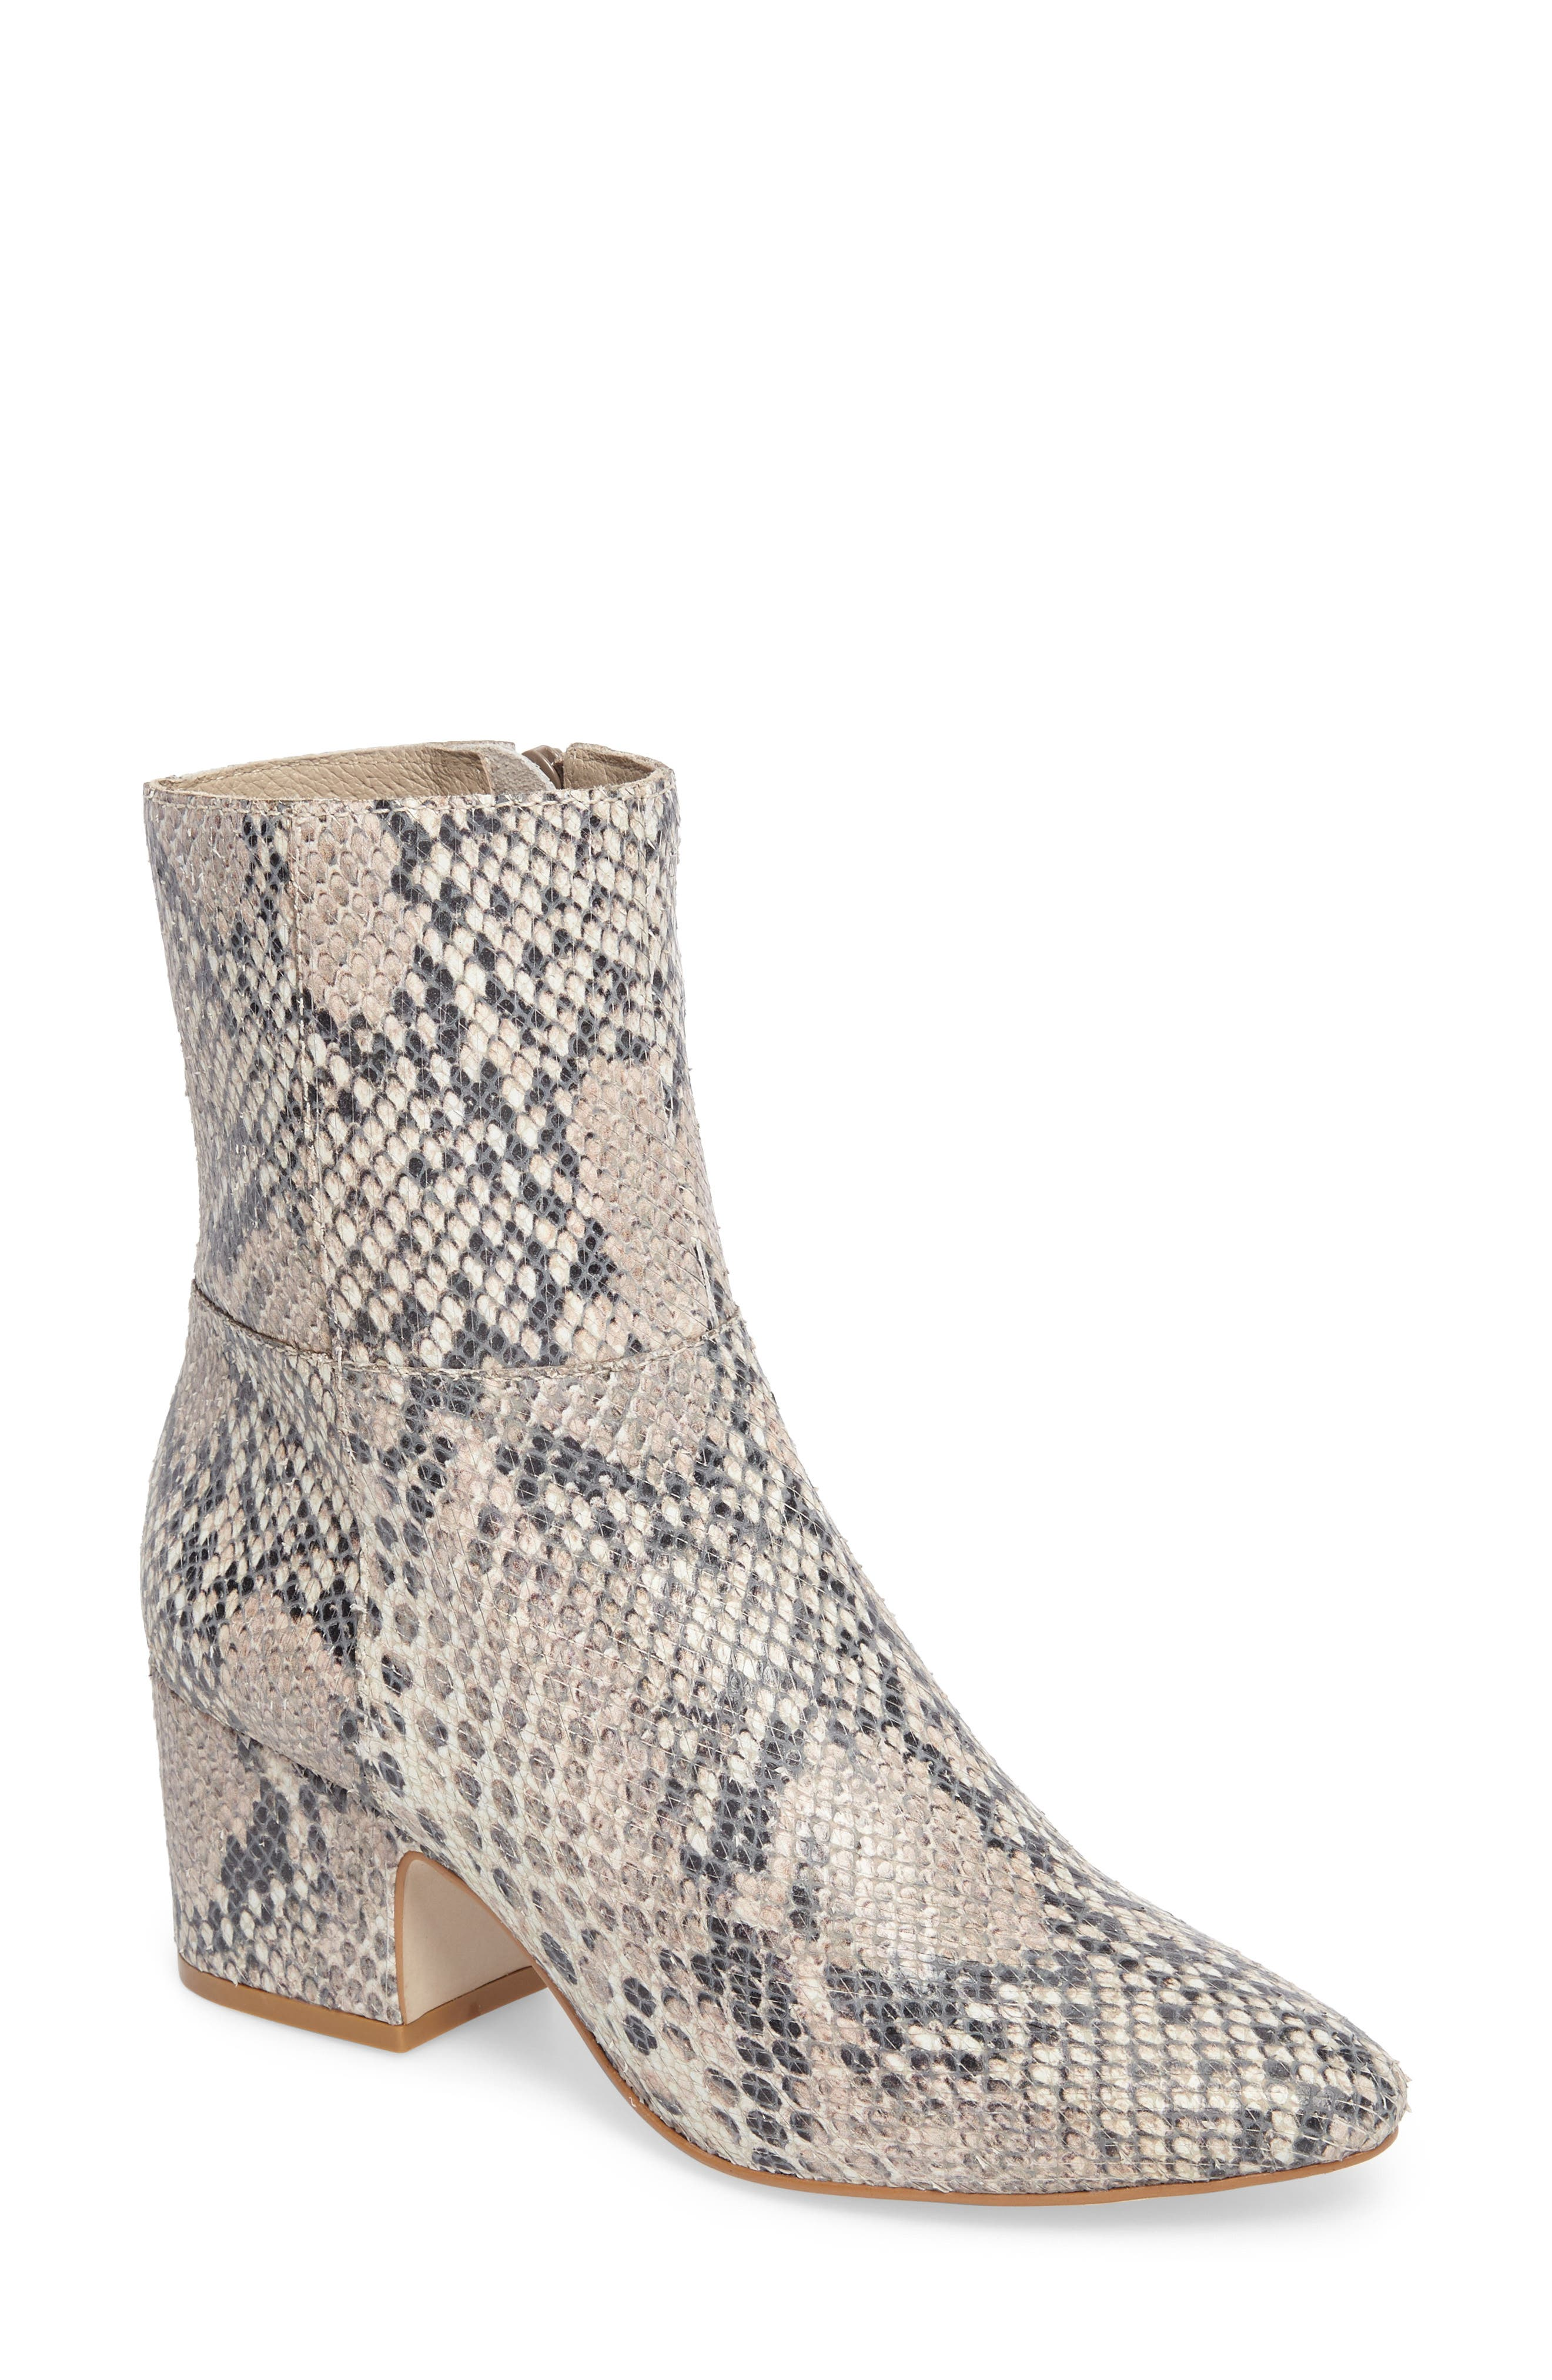 At Ease Genuine Calf Hair Bootie,                             Main thumbnail 1, color,                             NATURAL SNAKE LEATHER